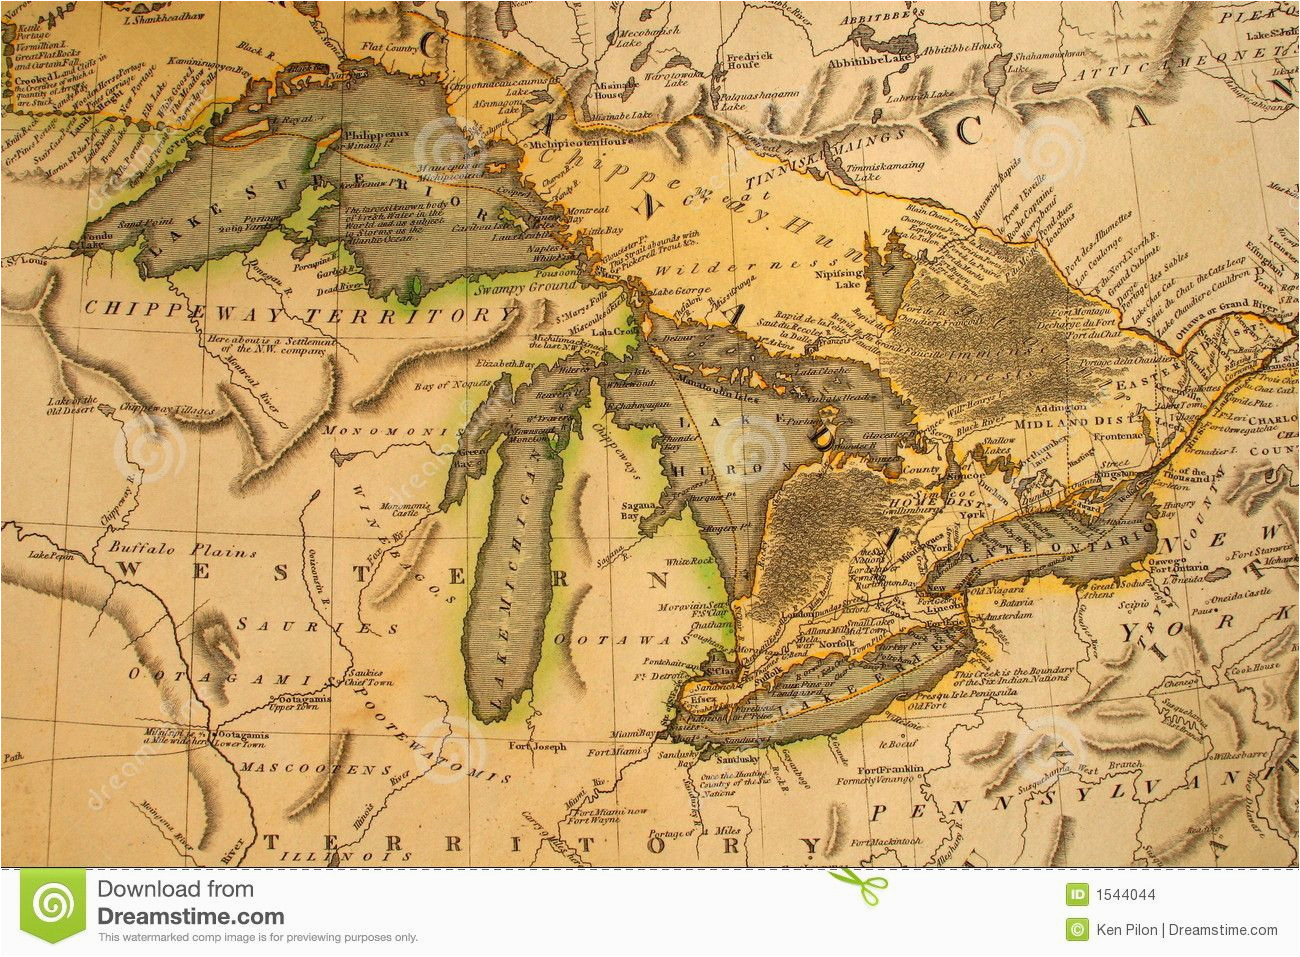 35 awesome vintage michigan maps images art pinterest map